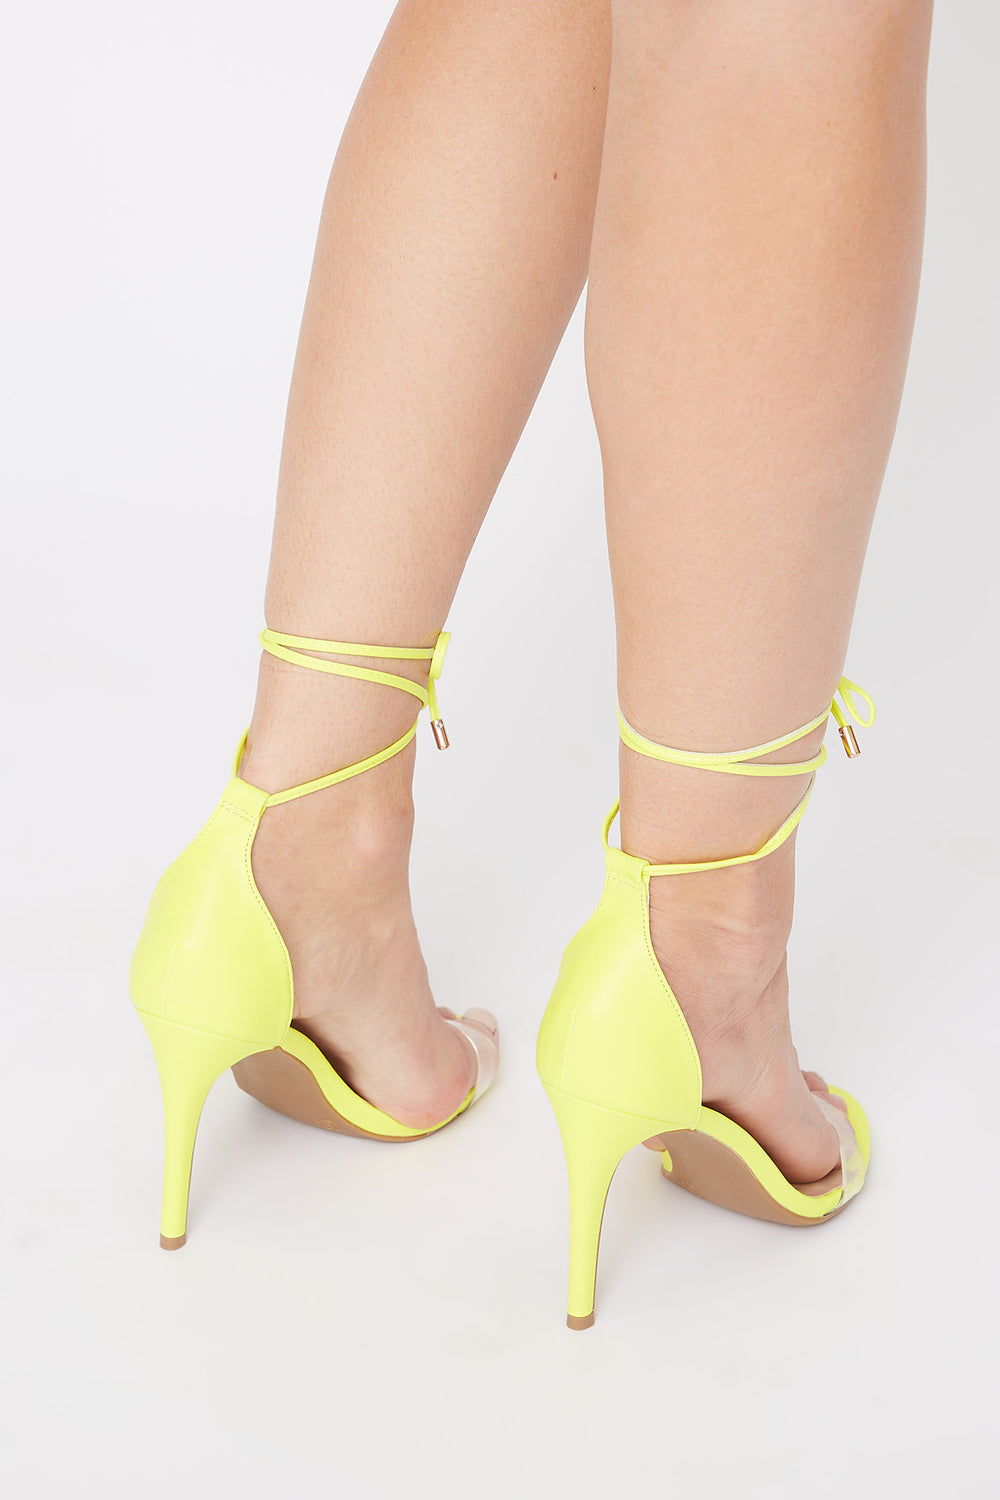 Clear Band Tie-Up Stiletto Sandal Neon Yellow